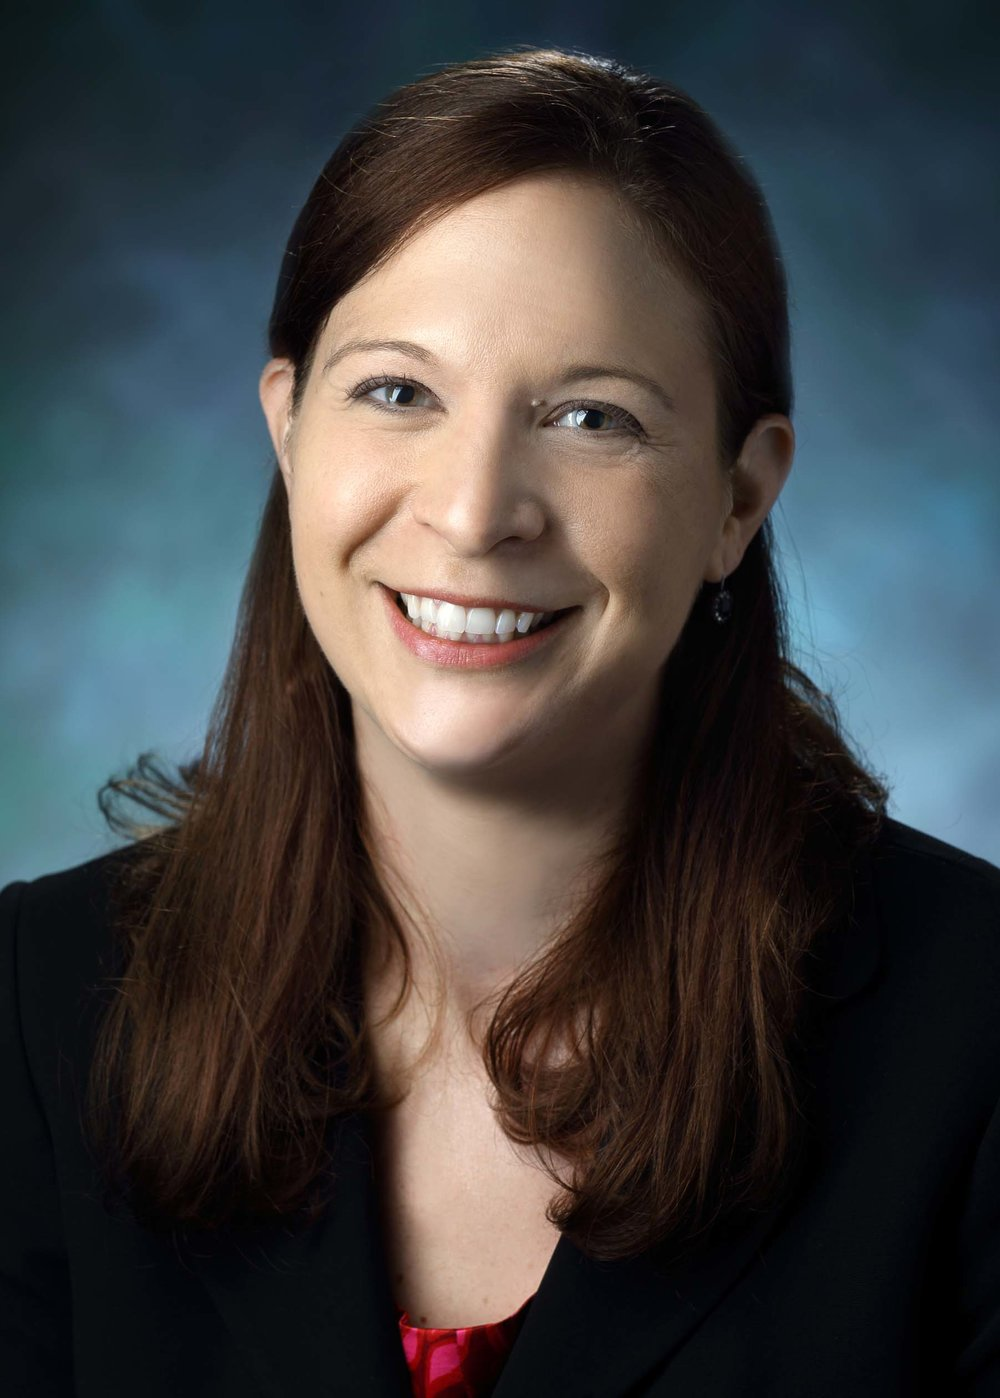 Karen Seymour, Ph.D. - Assistant Professor, JHU School of MedicineLab Alumnus